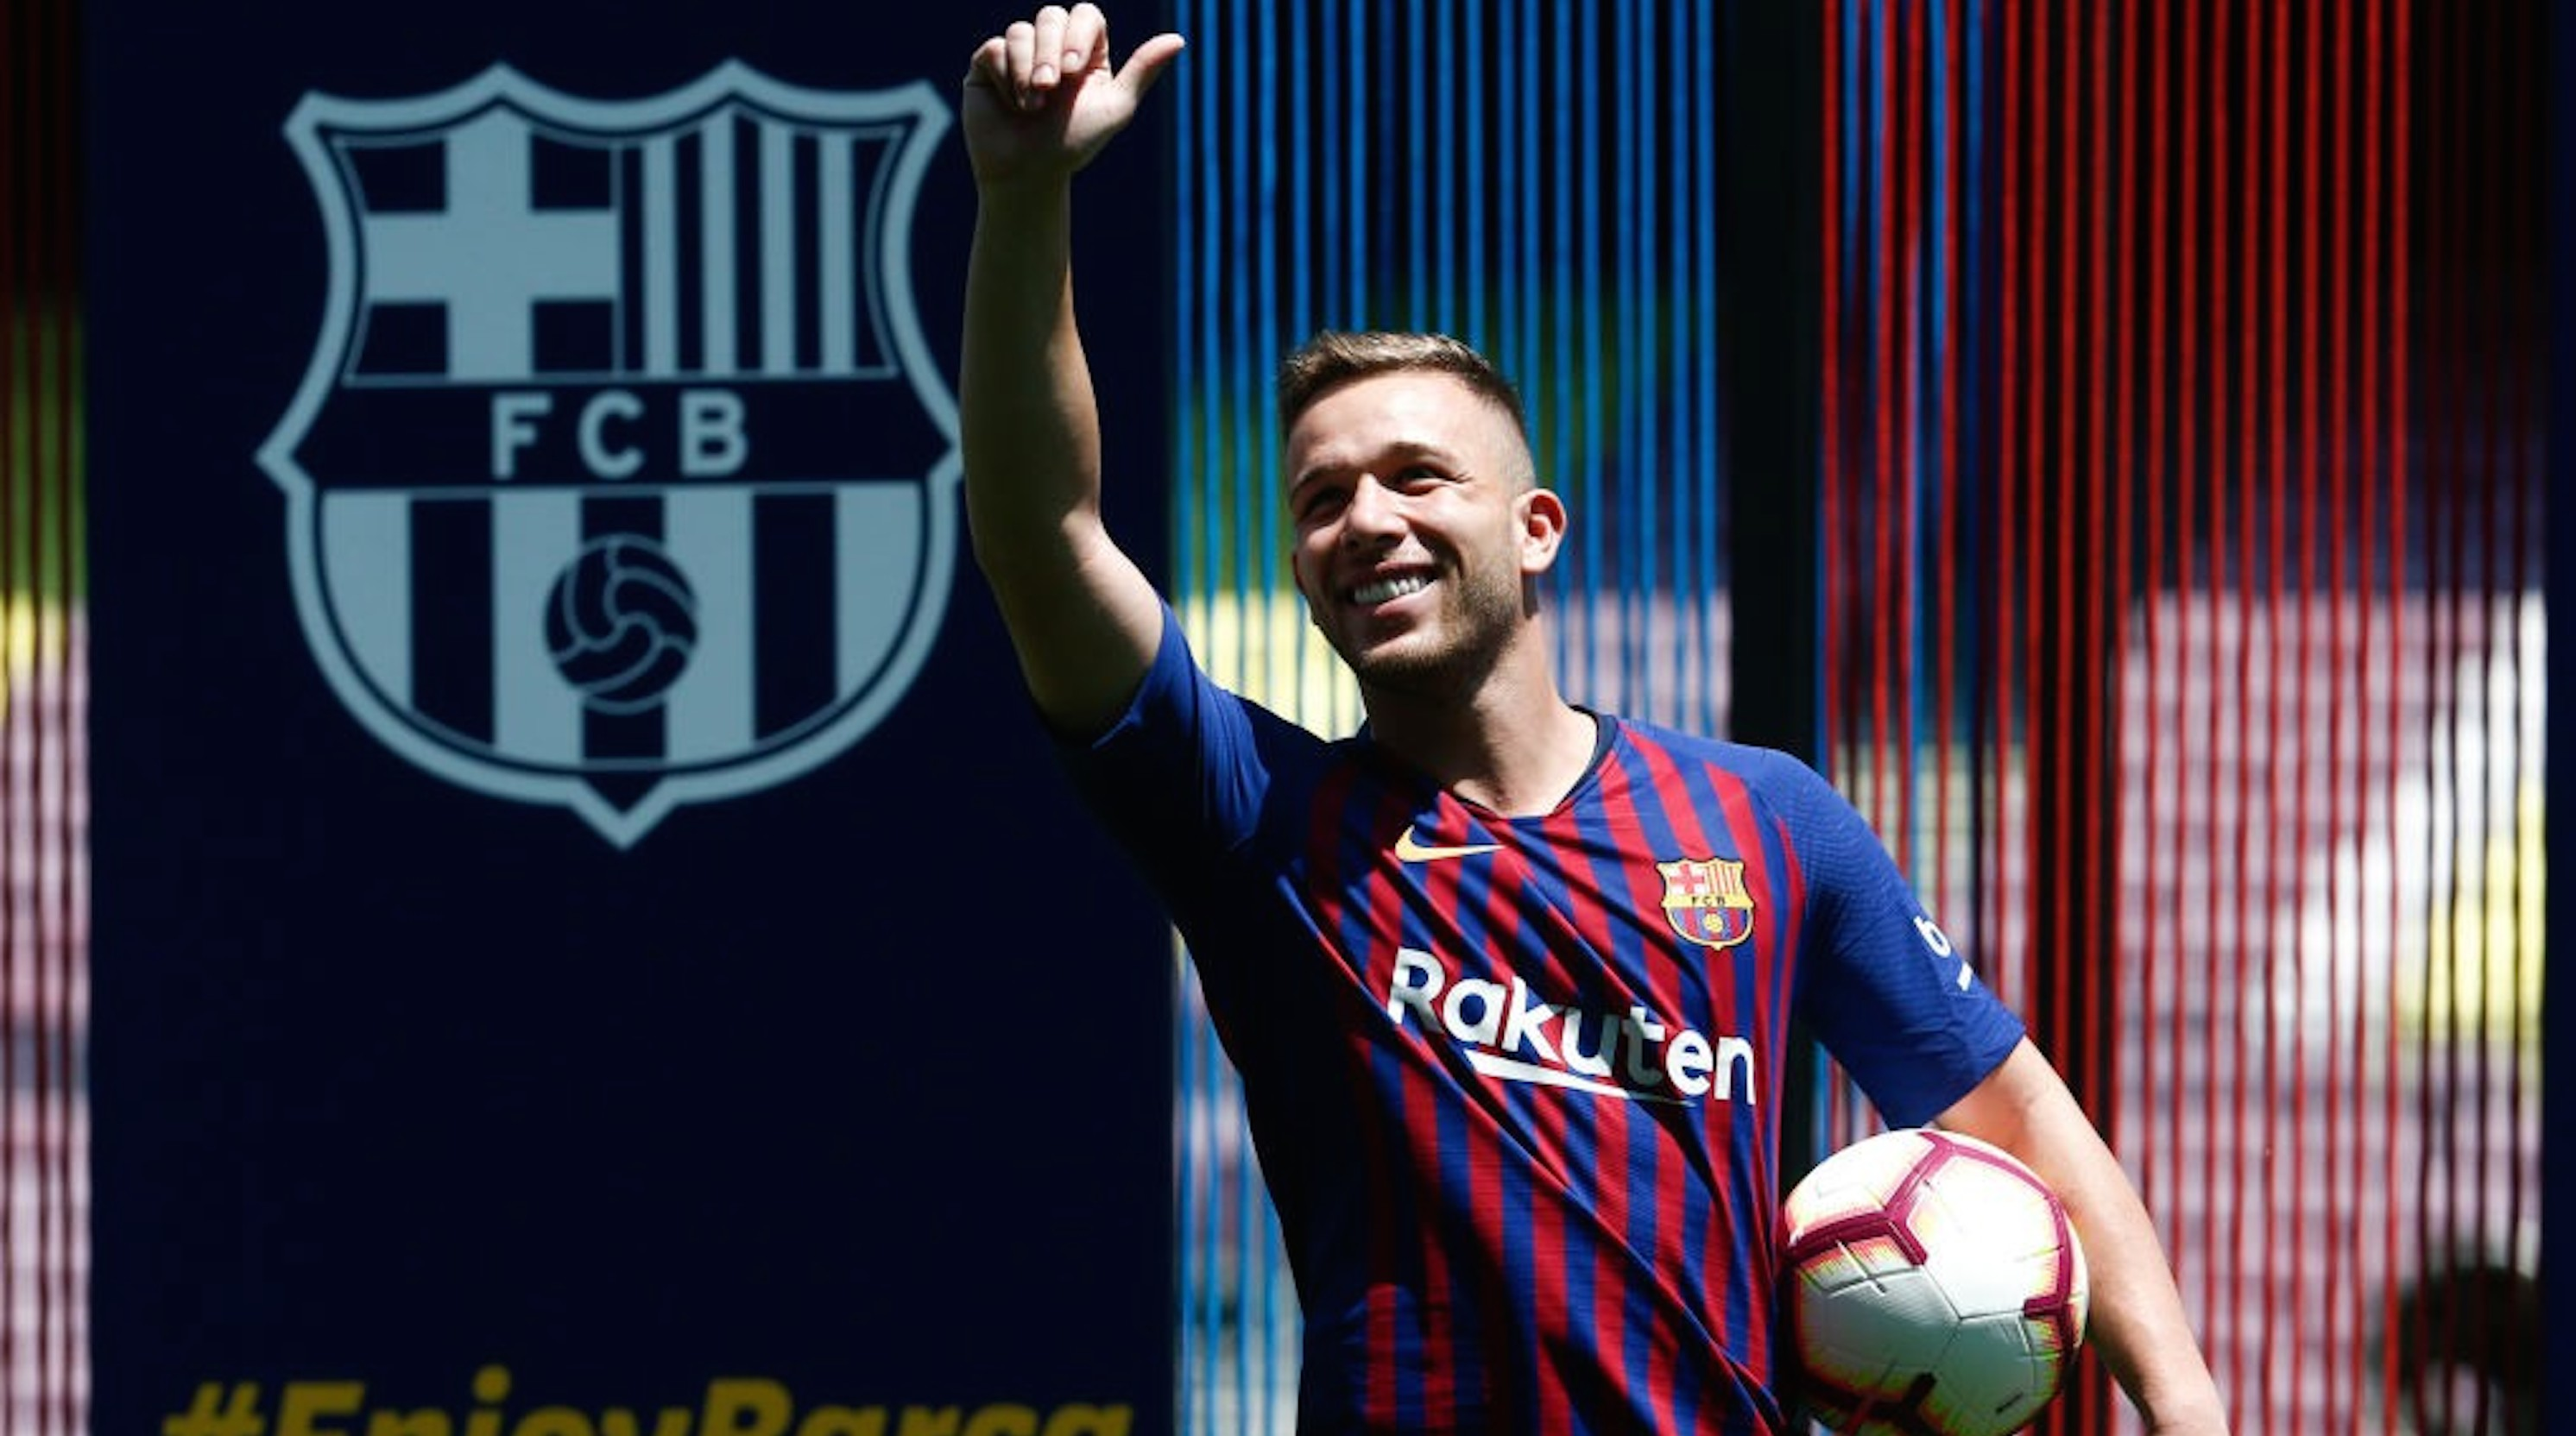 Barcelona's new player Brazilian midfielder Arthur Henrique Ramos de Oliveira Melo waves during his official presentation at the Camp Nou Stadium in Barcelona, on July 12, 2018. - Barcelona confirmed the arrival of Brazilian new recruit Arthur from Brazilian outfit Gremio on a 31 million euros ($37 million) deal. The Spanish champions will pay an extra 9 million in bonuses in the six-year deal struck with the Brazilians for the midfielder. (Photo by PAU BARRENA / AFP) (Photo credit should read PAU BARRENA/AFP/Getty Images)